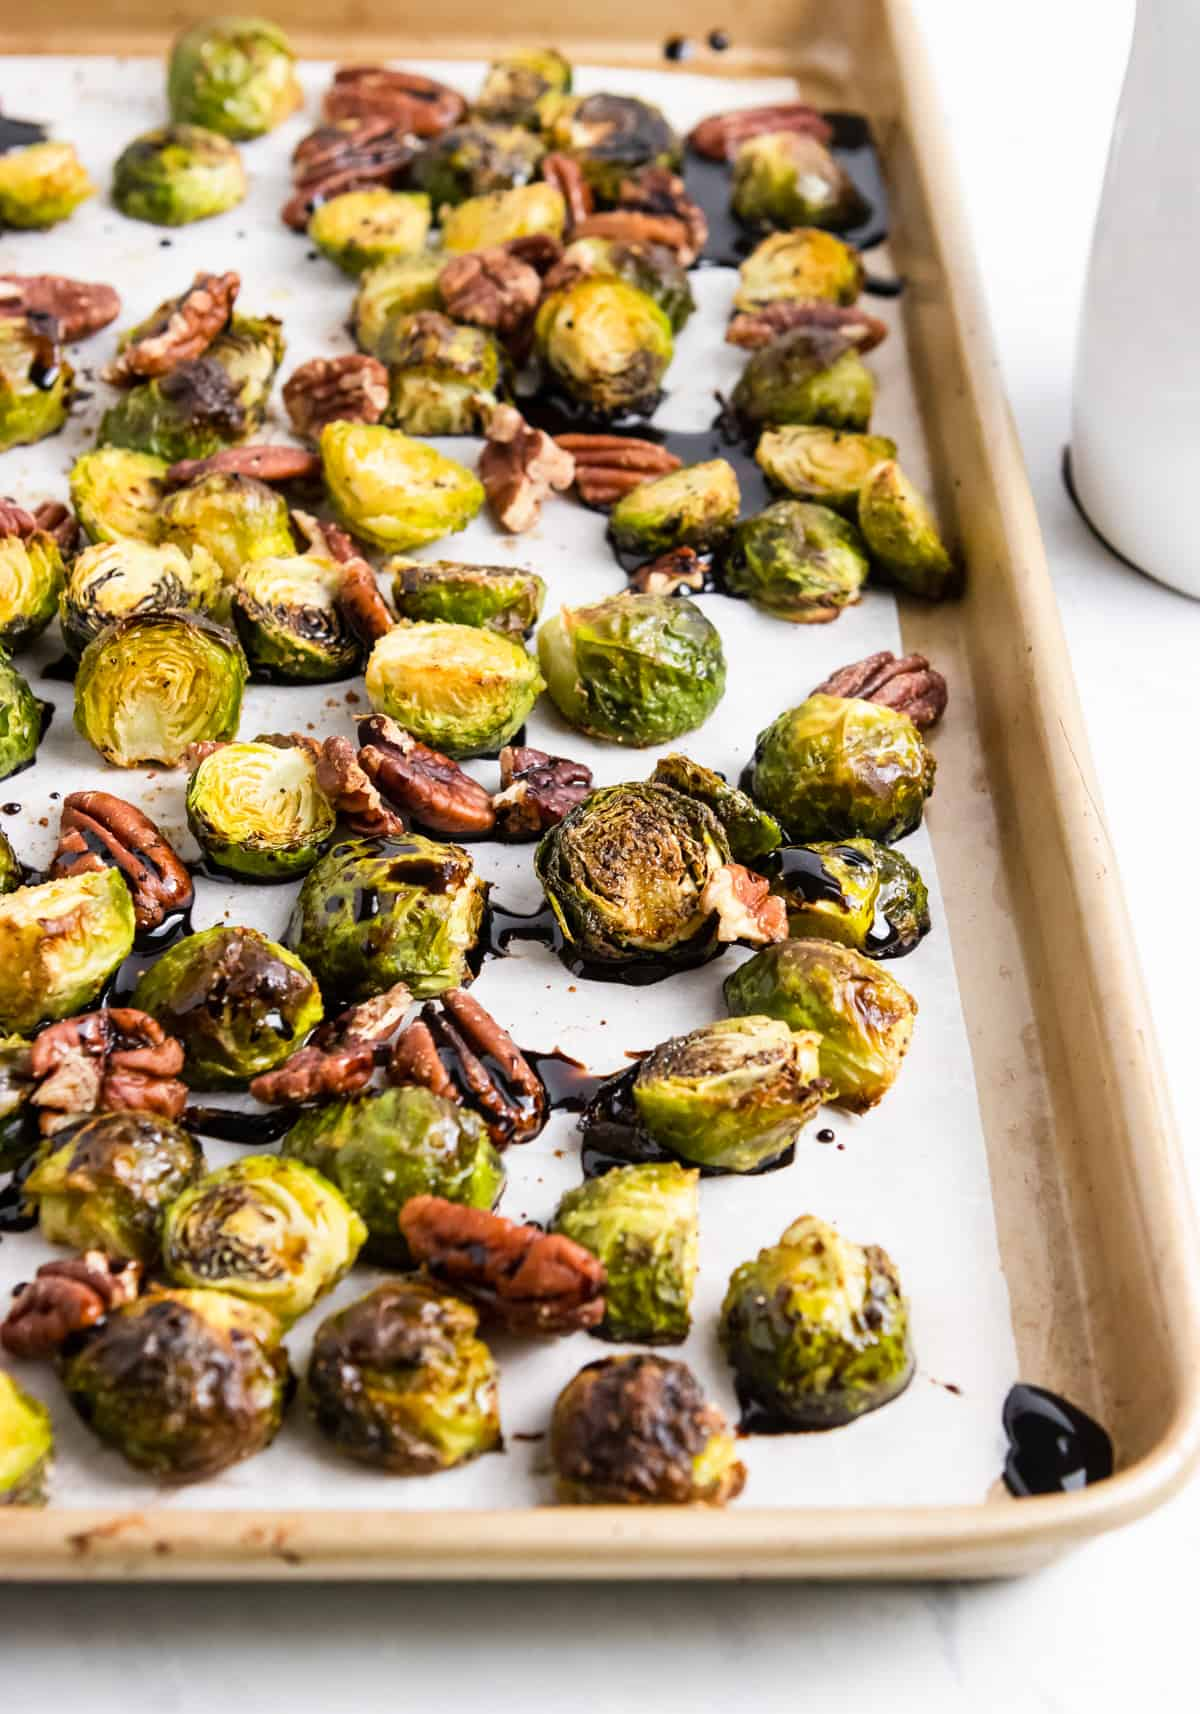 Roasted brussels sprouts on pan.